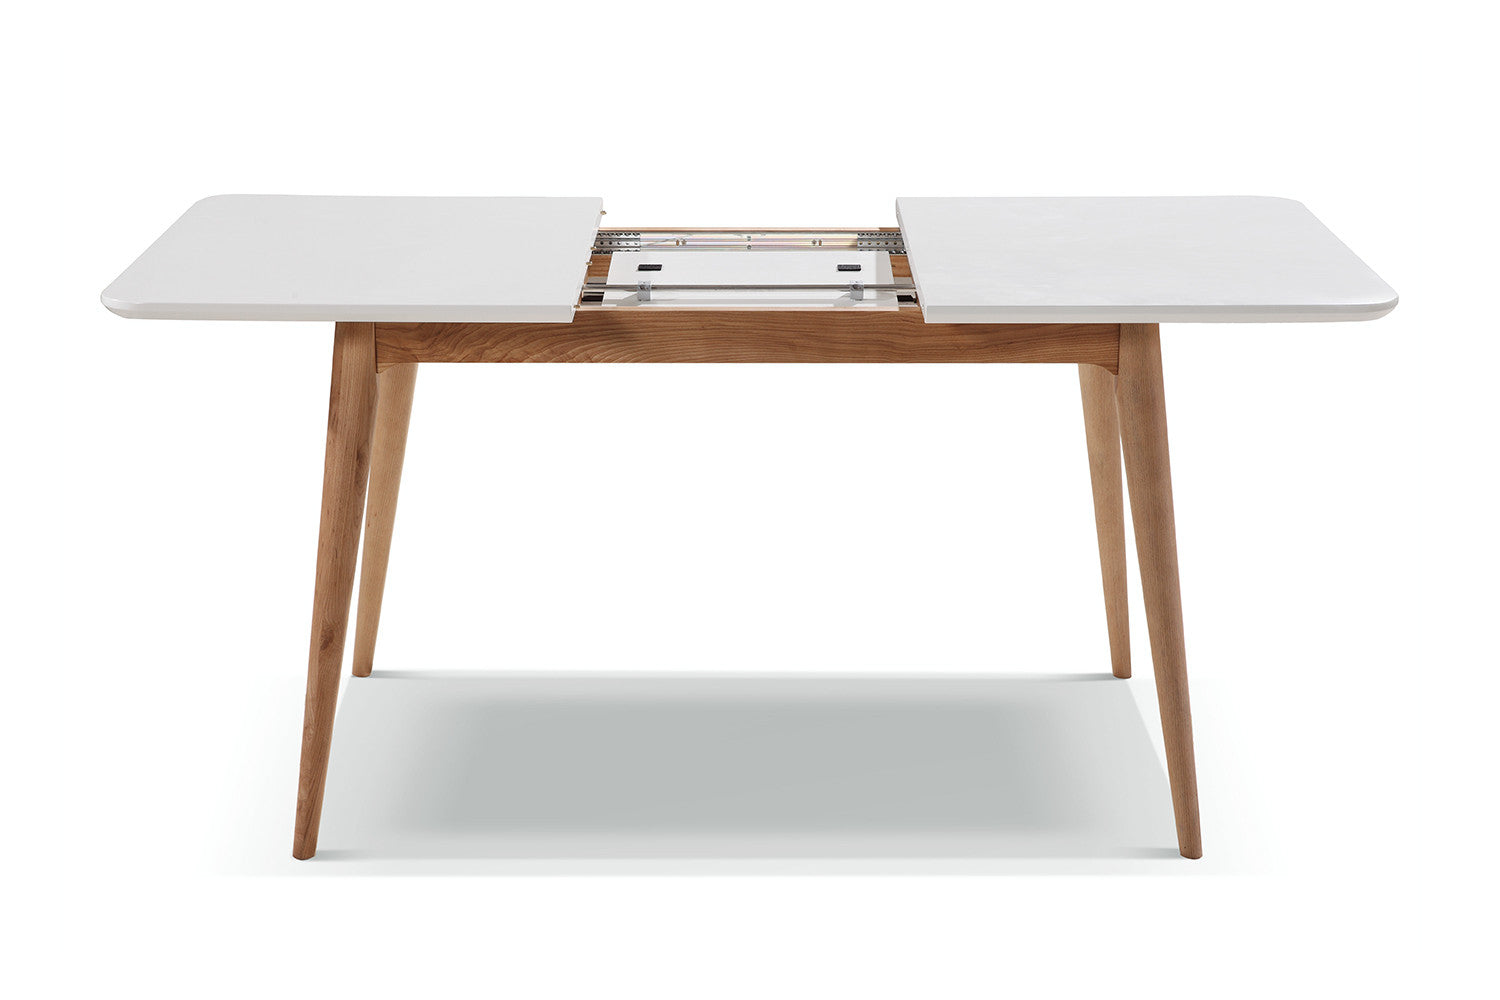 Table cuisine avec rallonge maison design for Table ronde rallonge integree